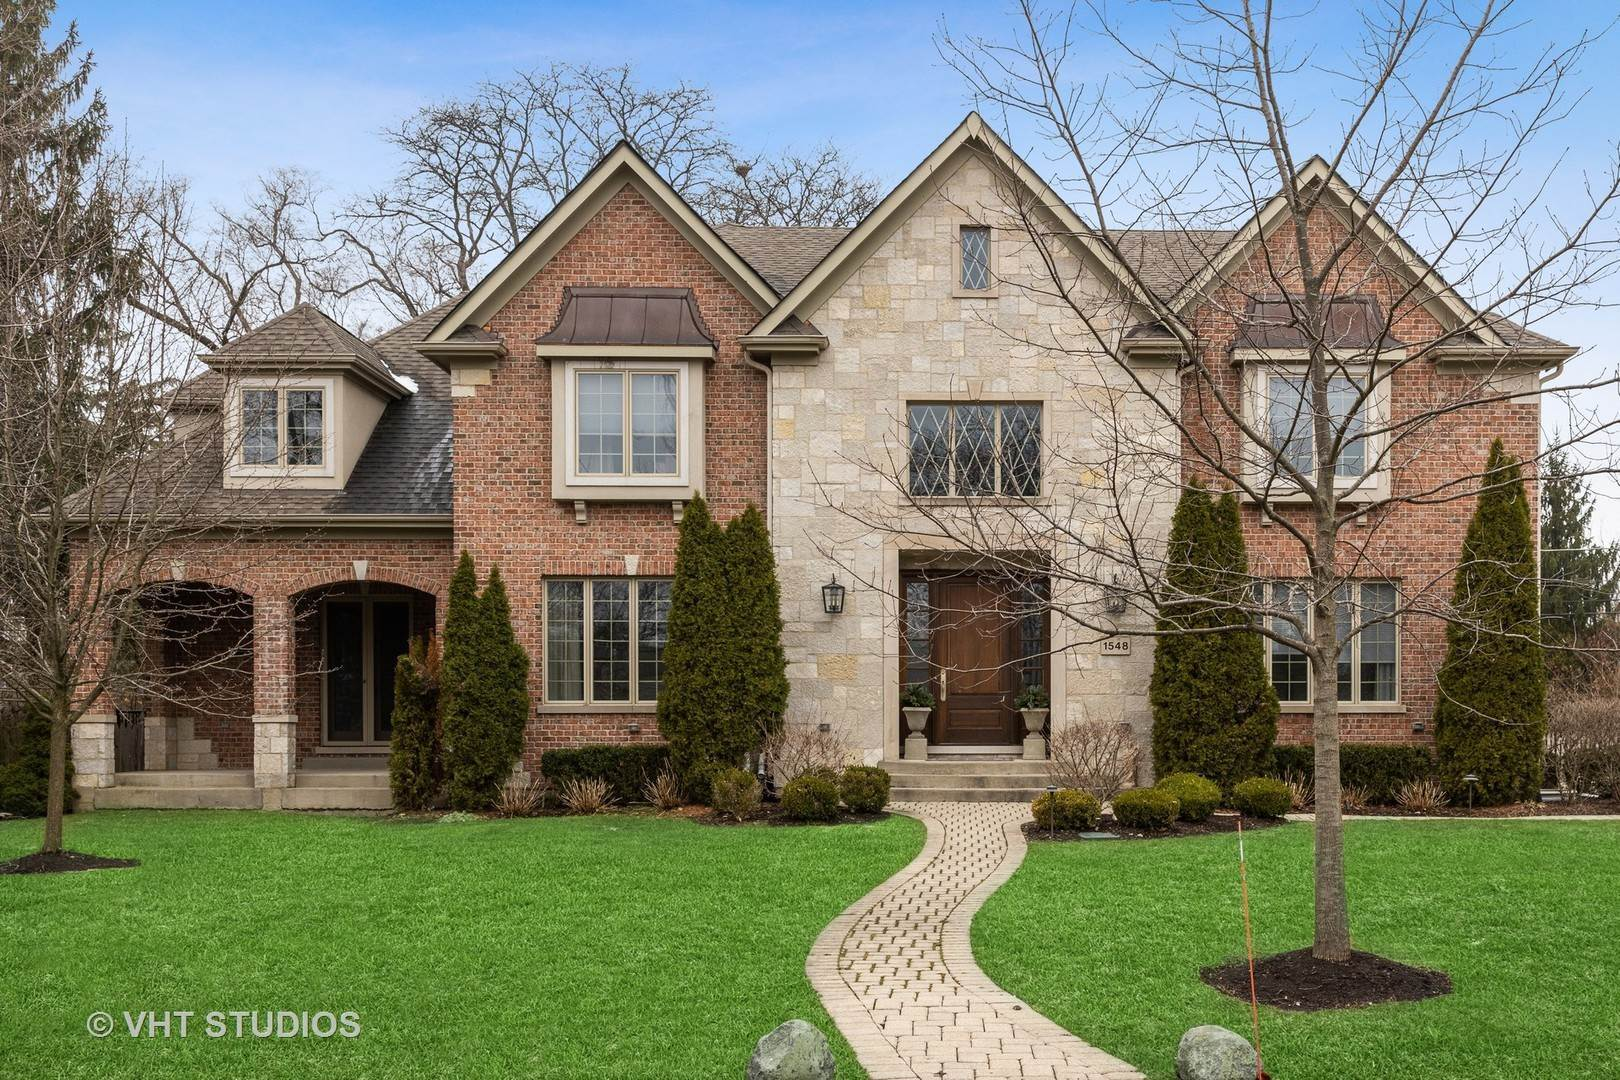 Single Family Homes for Sale at 1548 Meadow Lane Glenview, Illinois 60025 United States